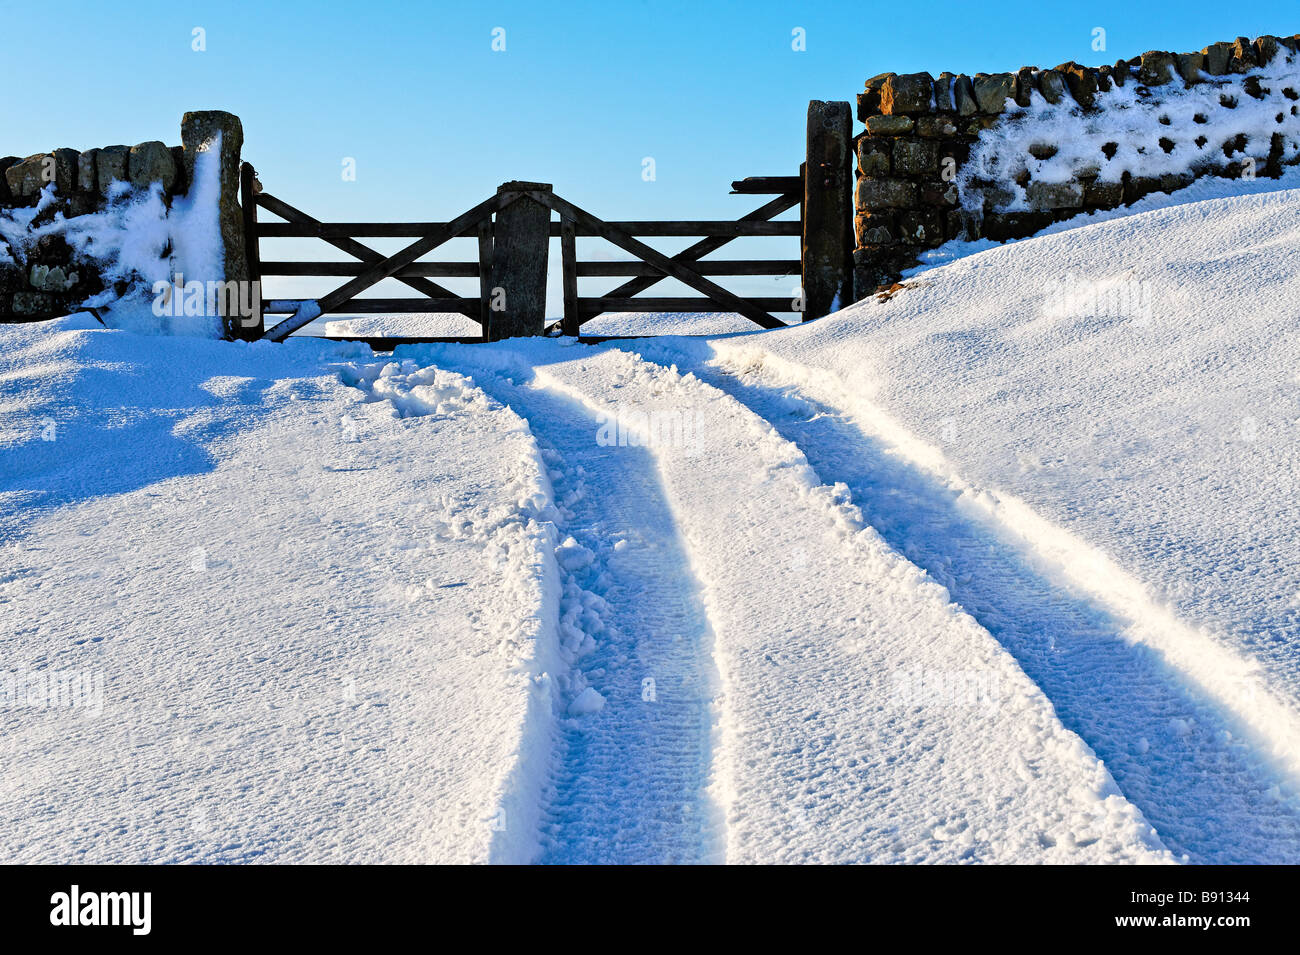 Tracks in deep snow leading to a gate - Stock Image